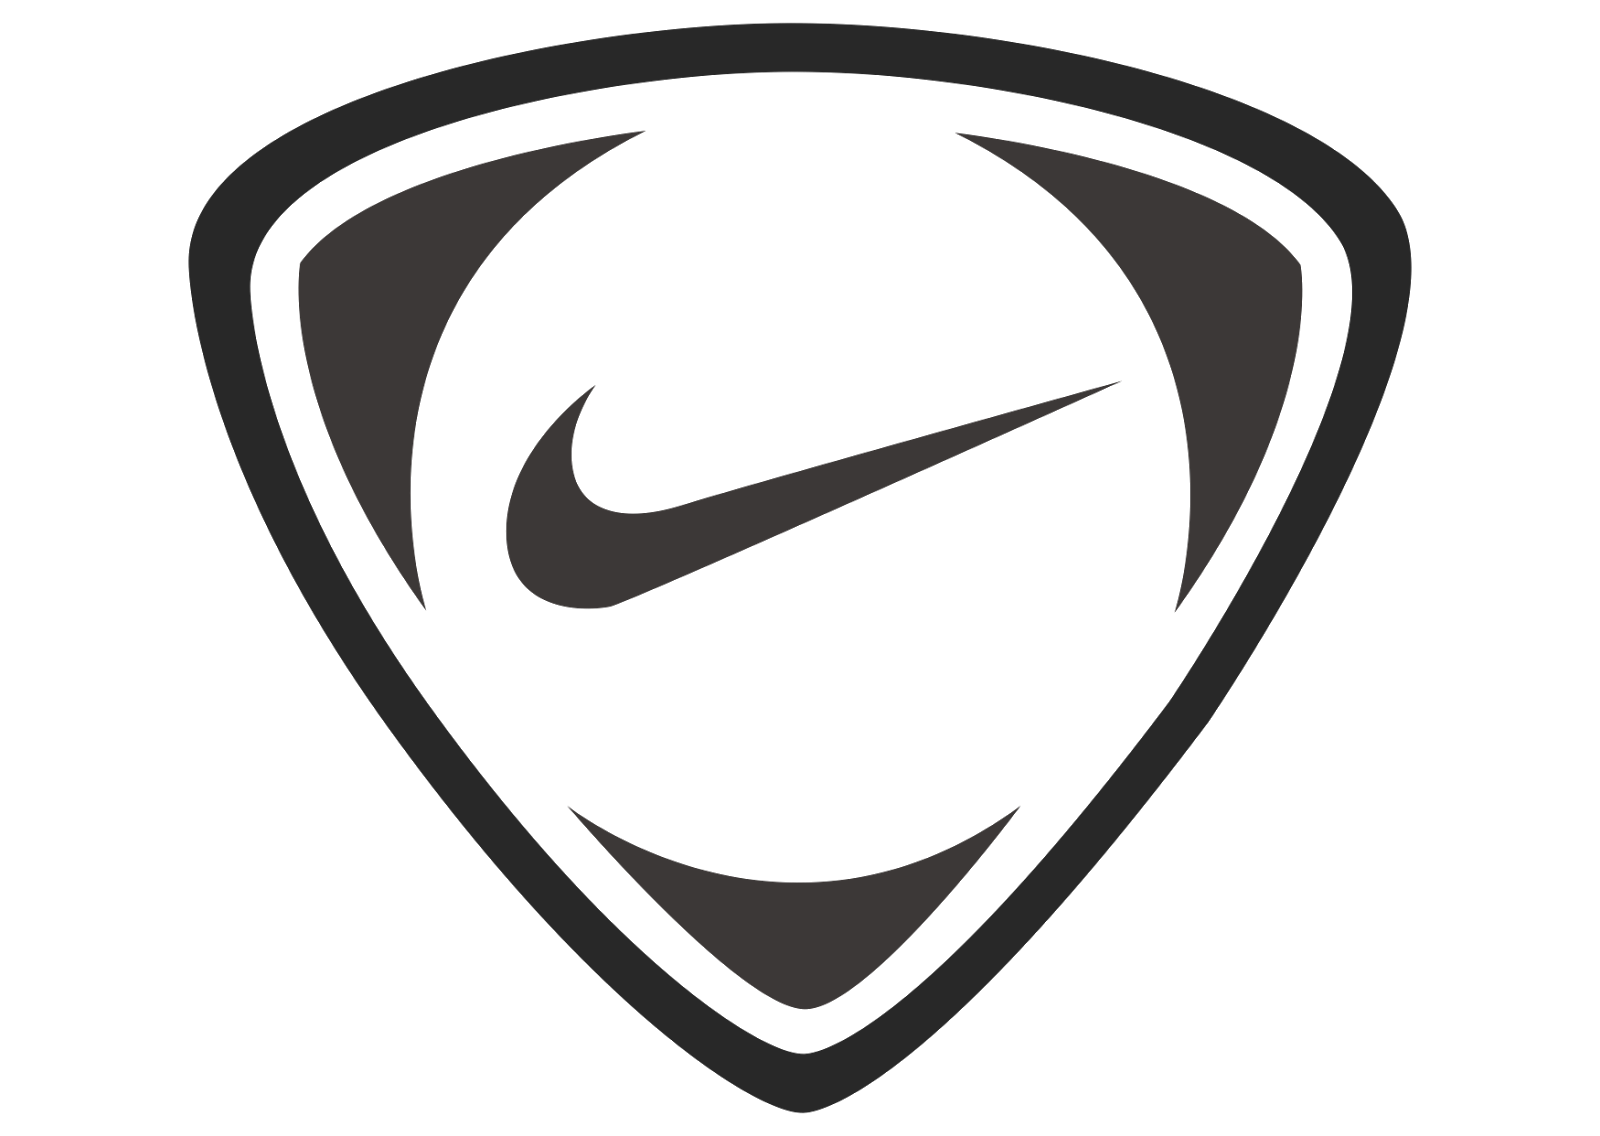 nike risk everything logo png wwwimgkidcom the image